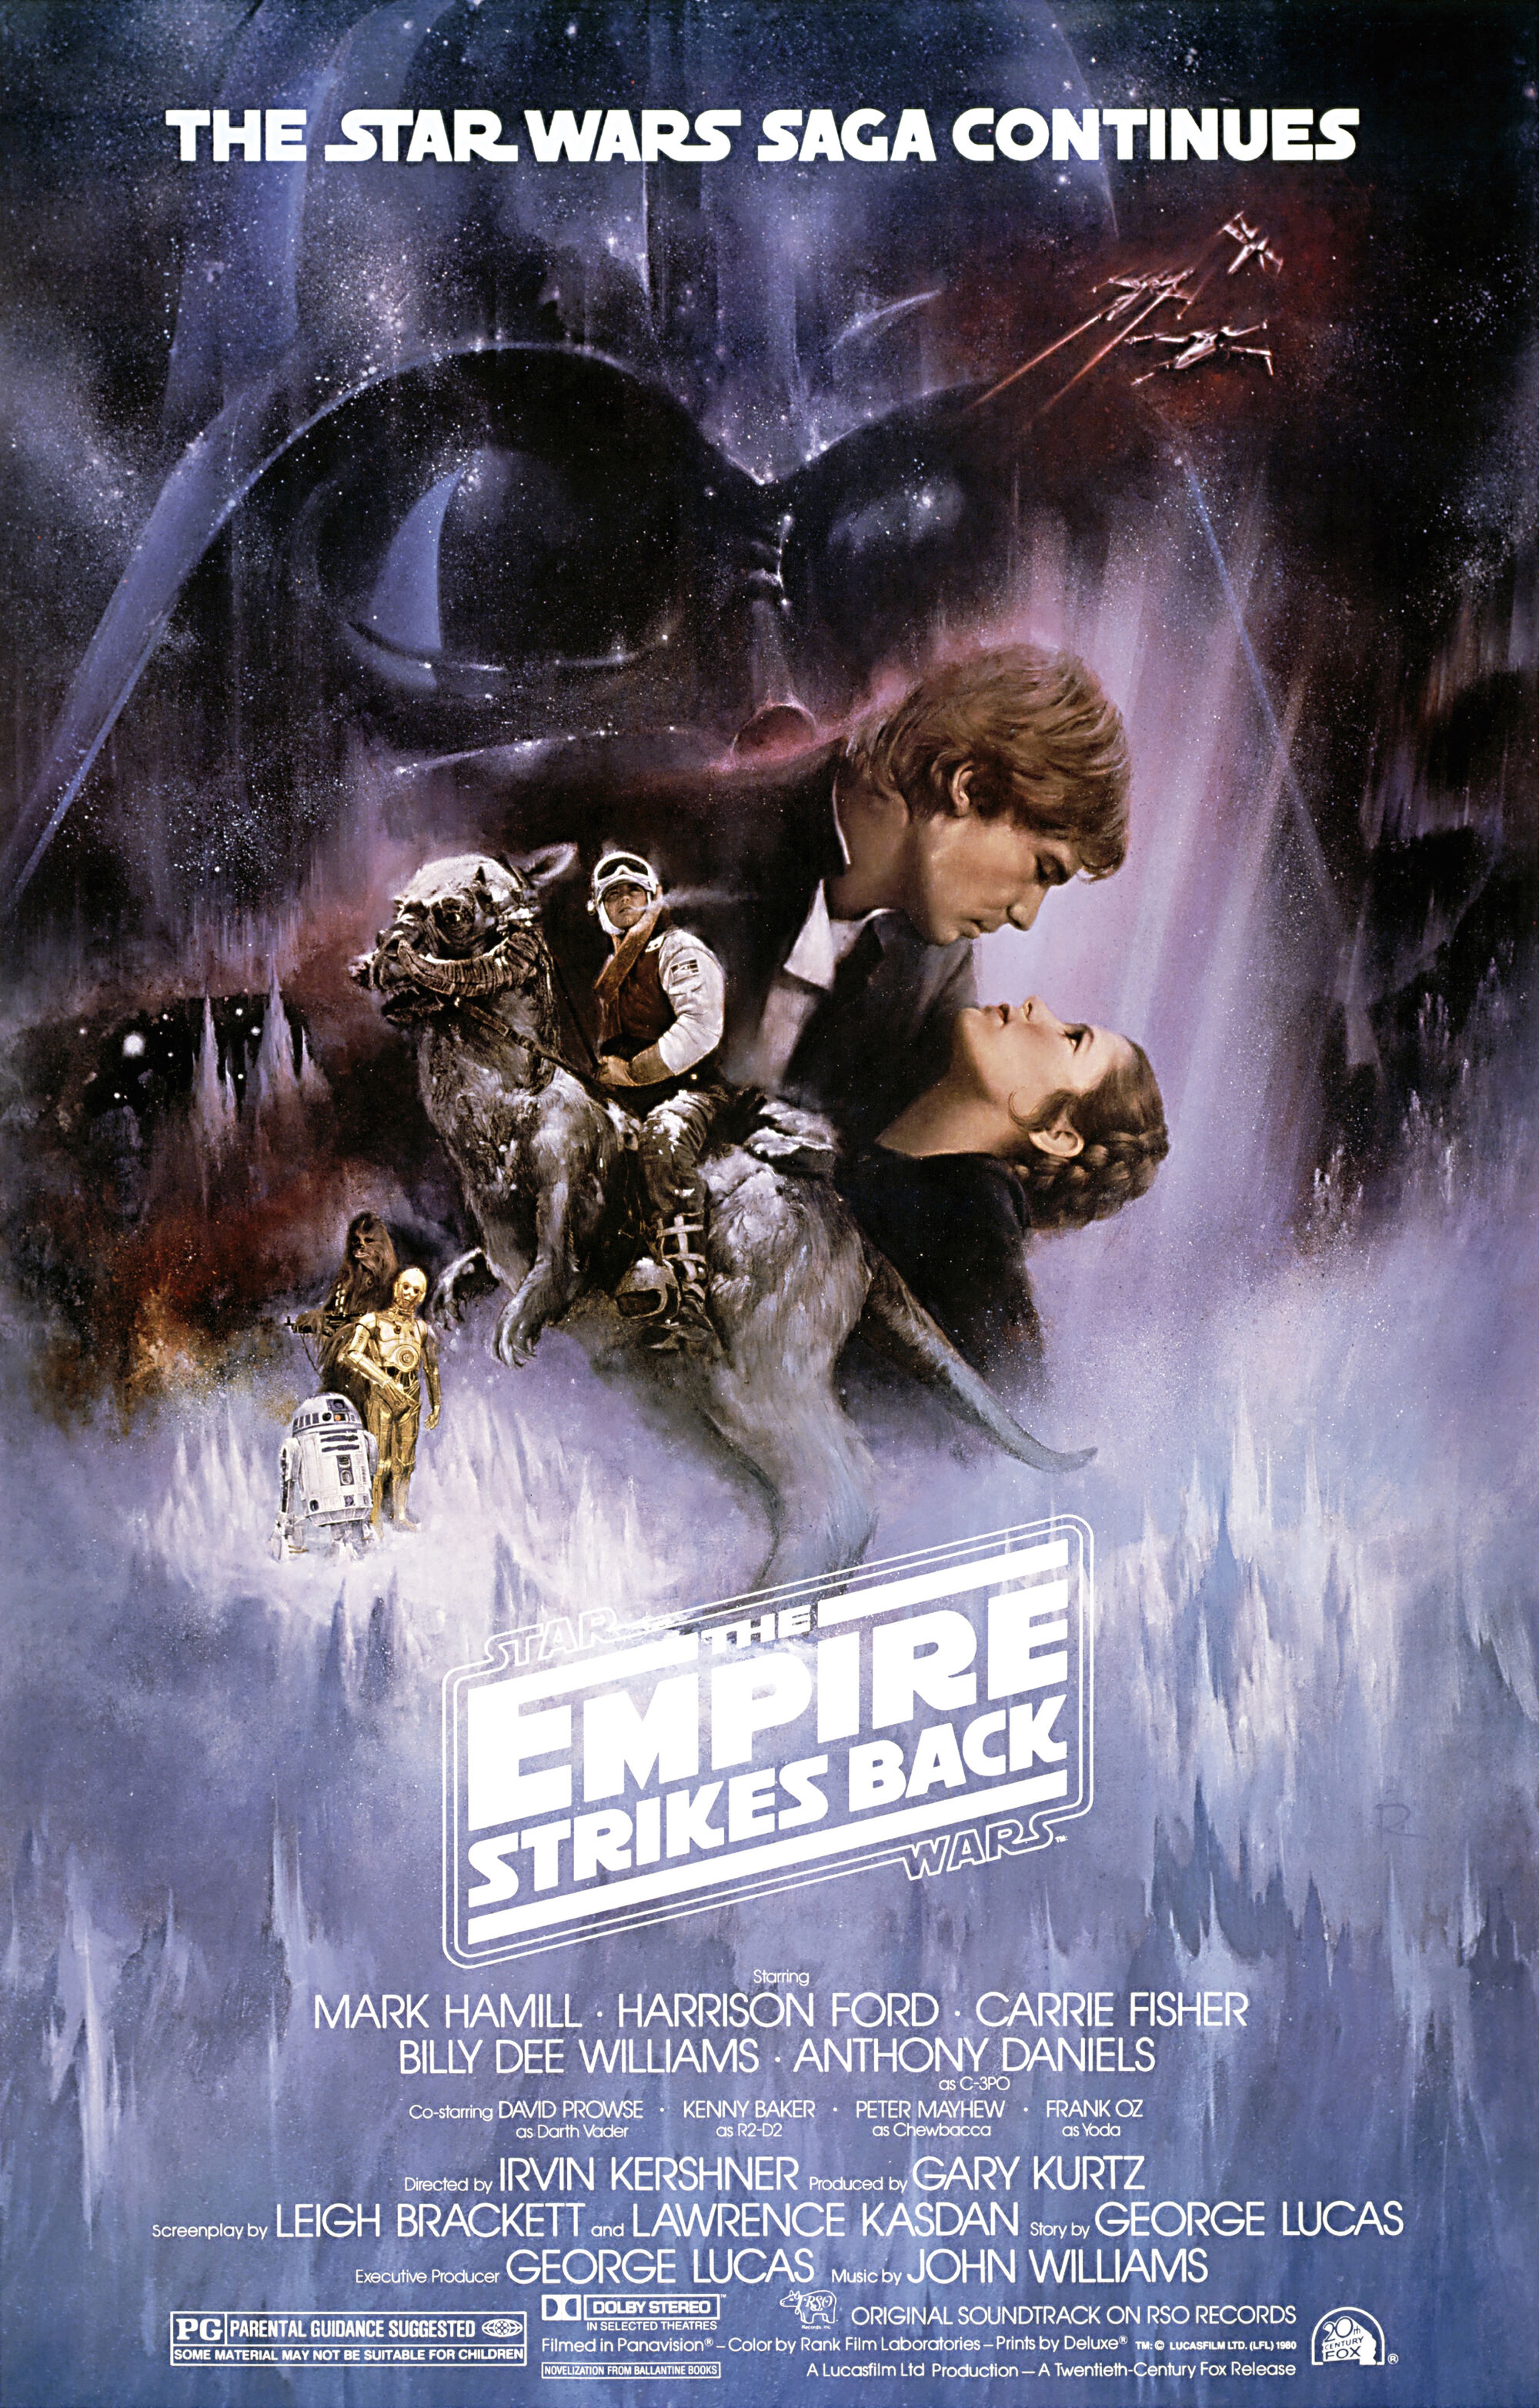 Star Wars: Episode V The Empire Strikes Back | Wookieepedia